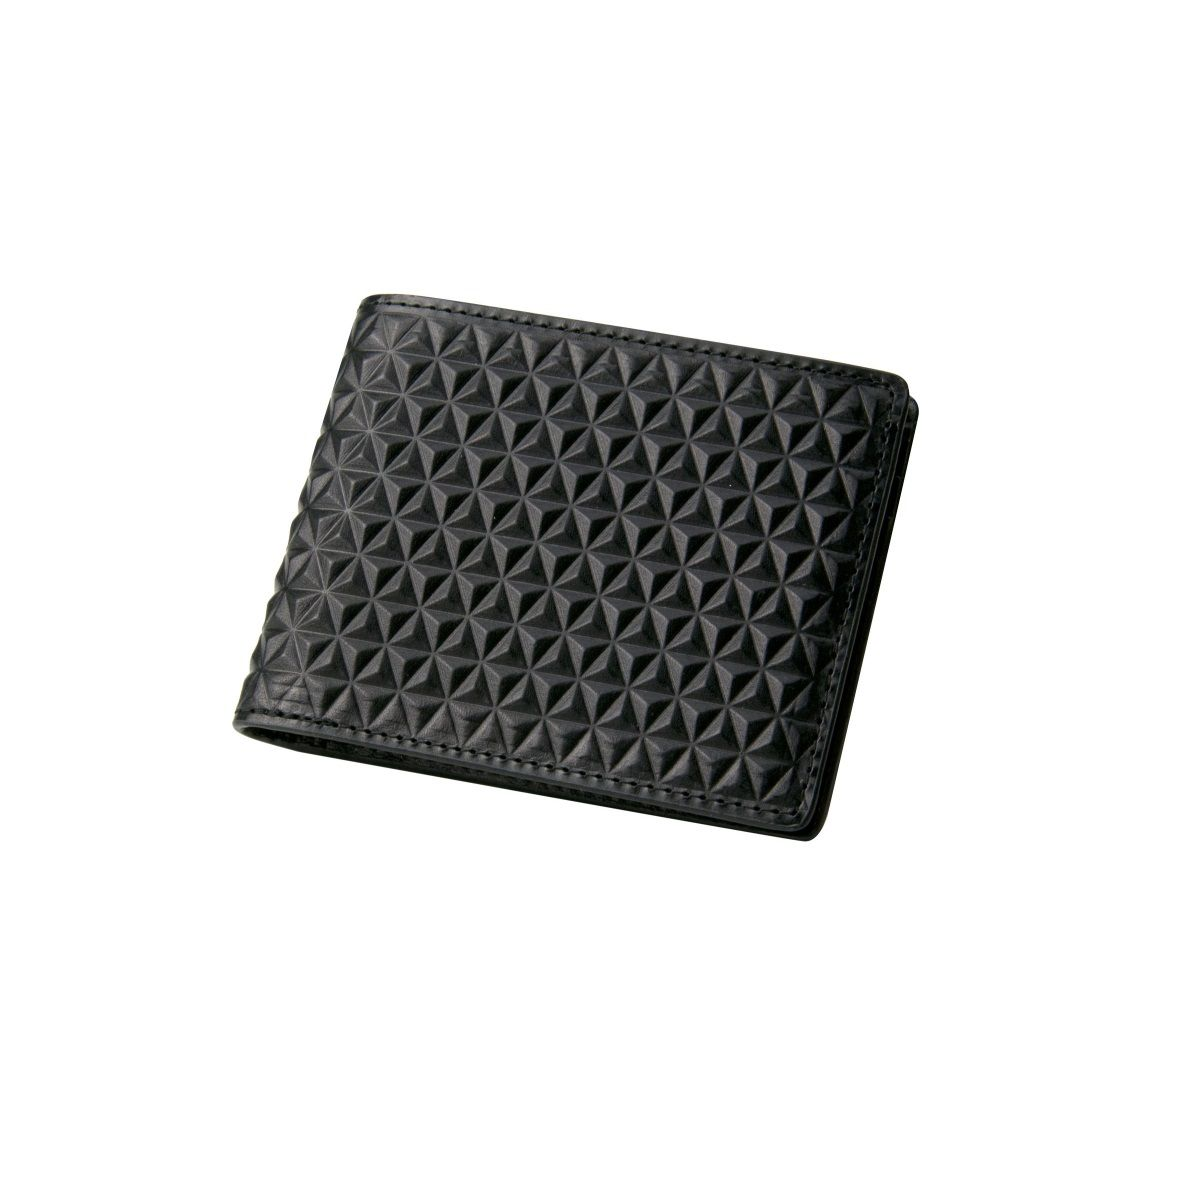 J.FOLD Tetra Leather Wallet - Black